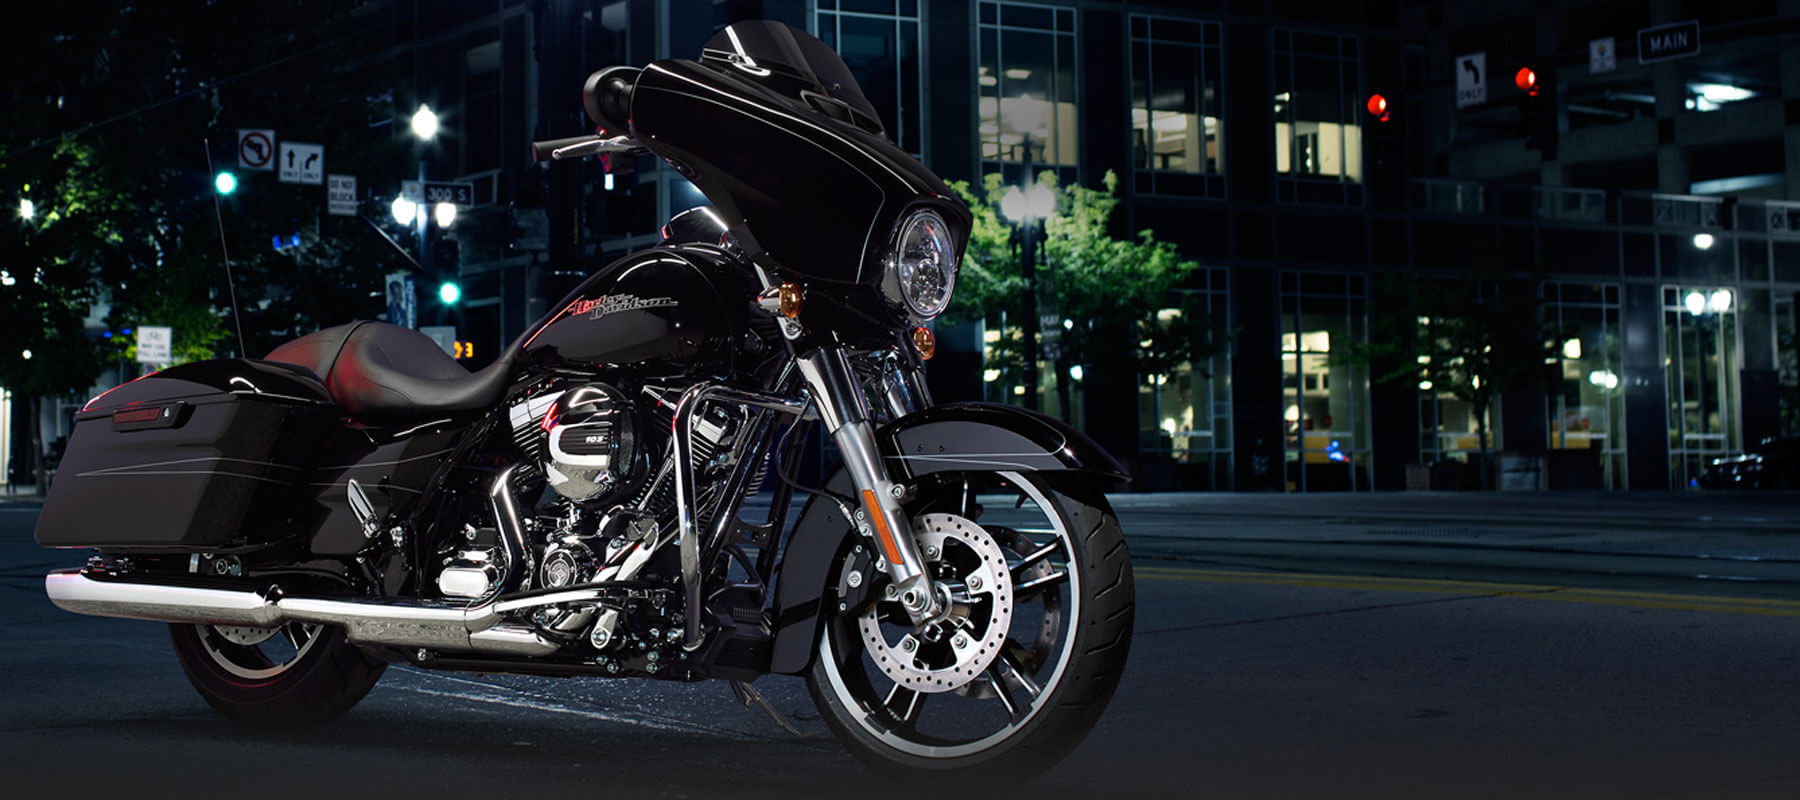 Street Glide Special background